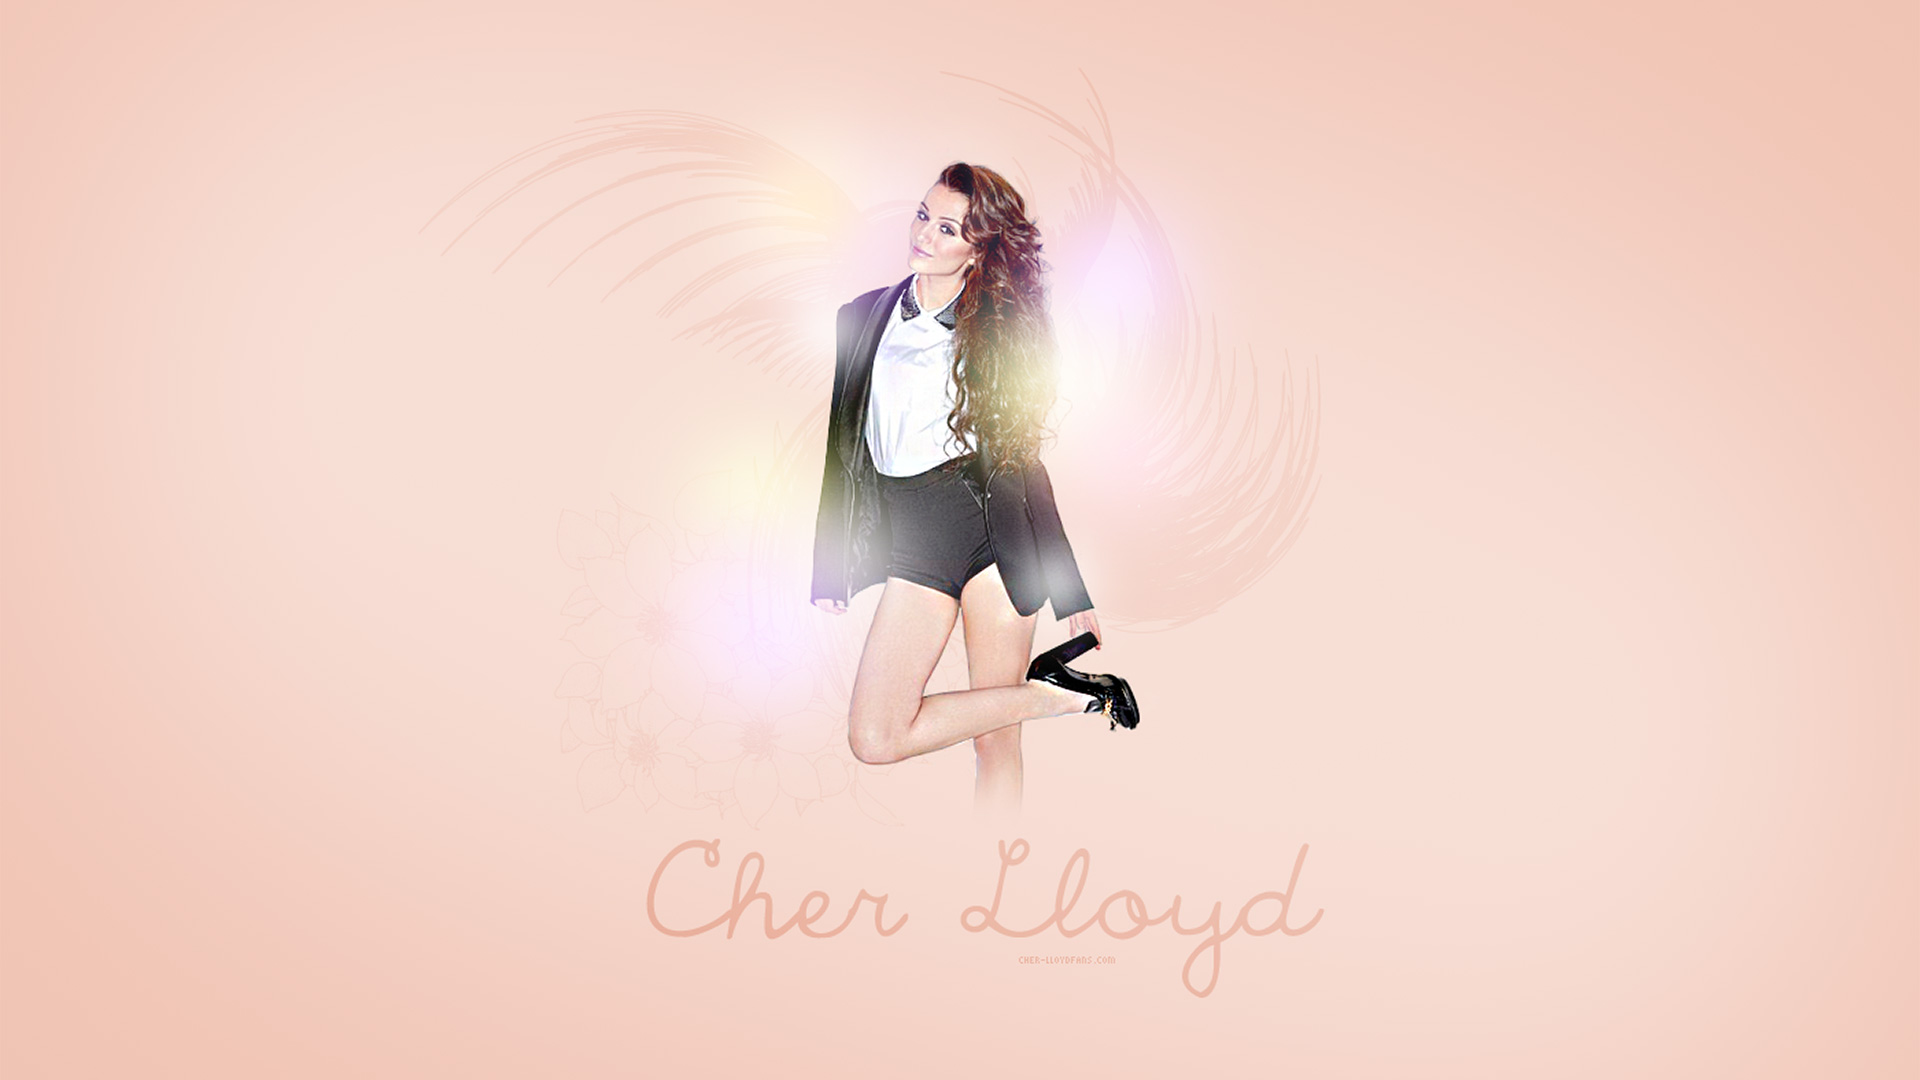 15 Cher Lloyd Wallpapers | Cher Lloyd Backgrounds